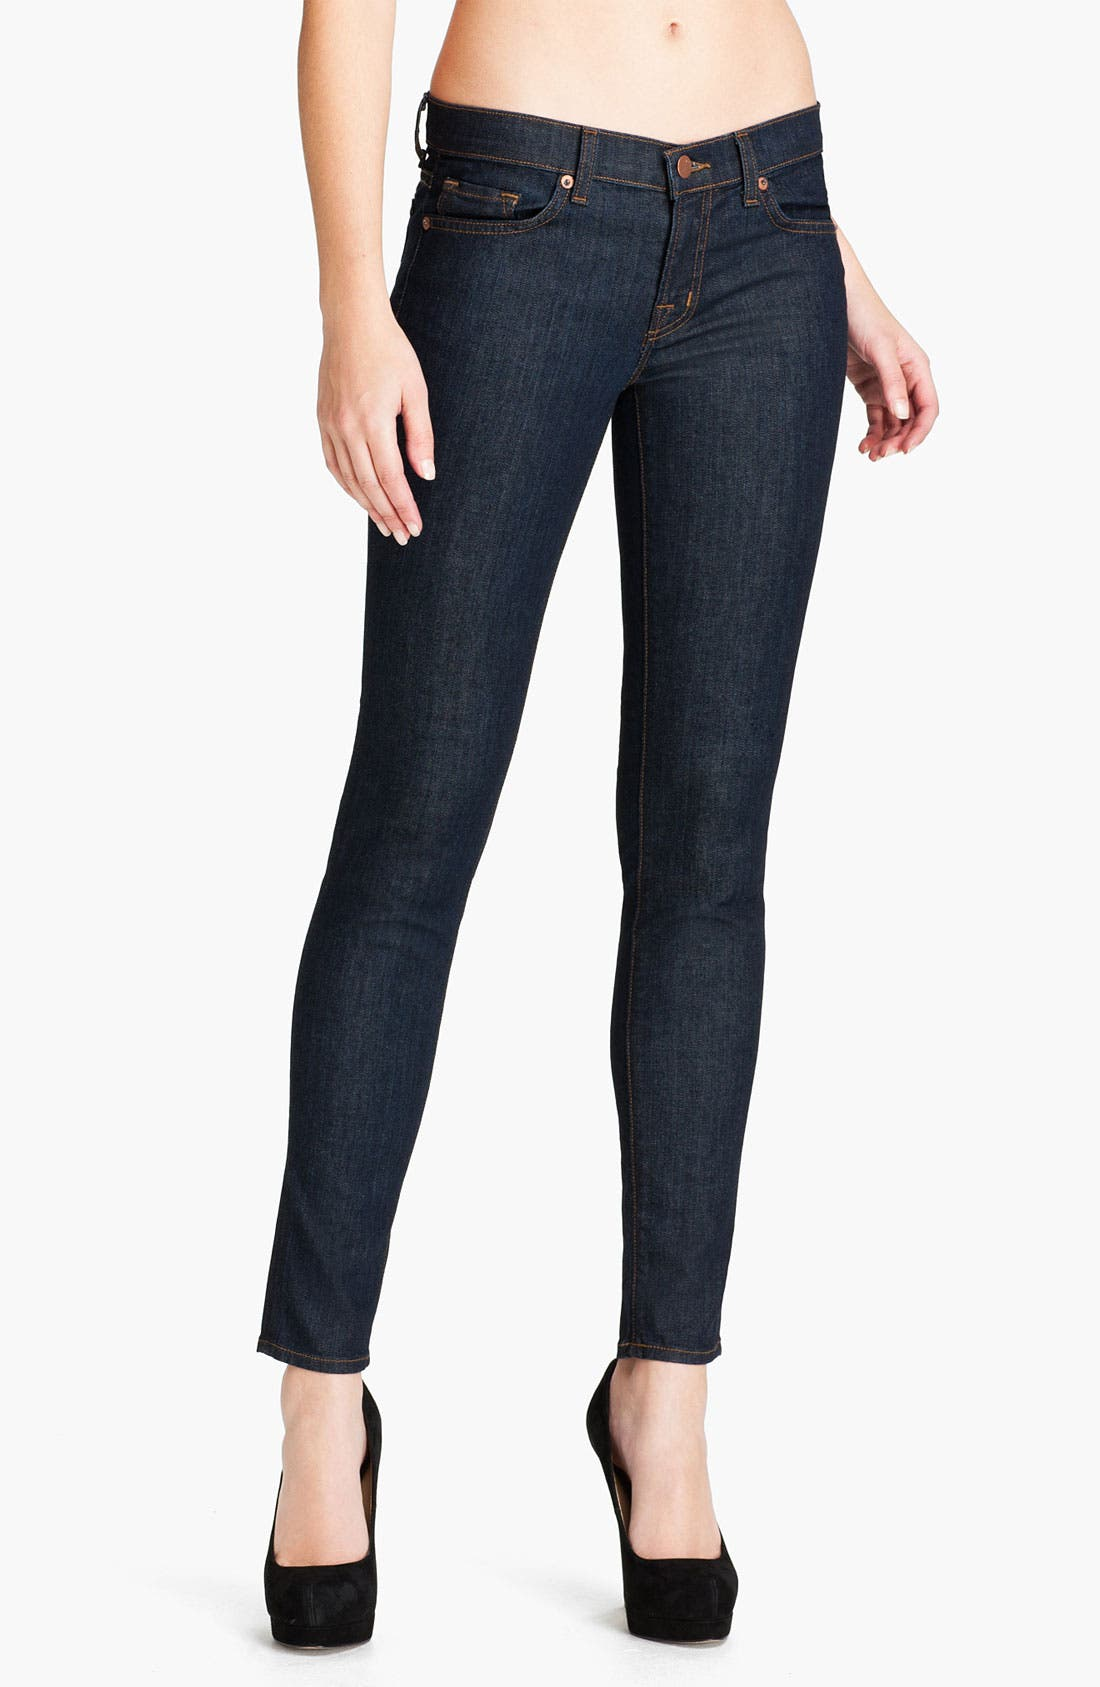 Alternate Image 1 Selected - J Brand Stretch Denim Skinny Jeans (Tudor)